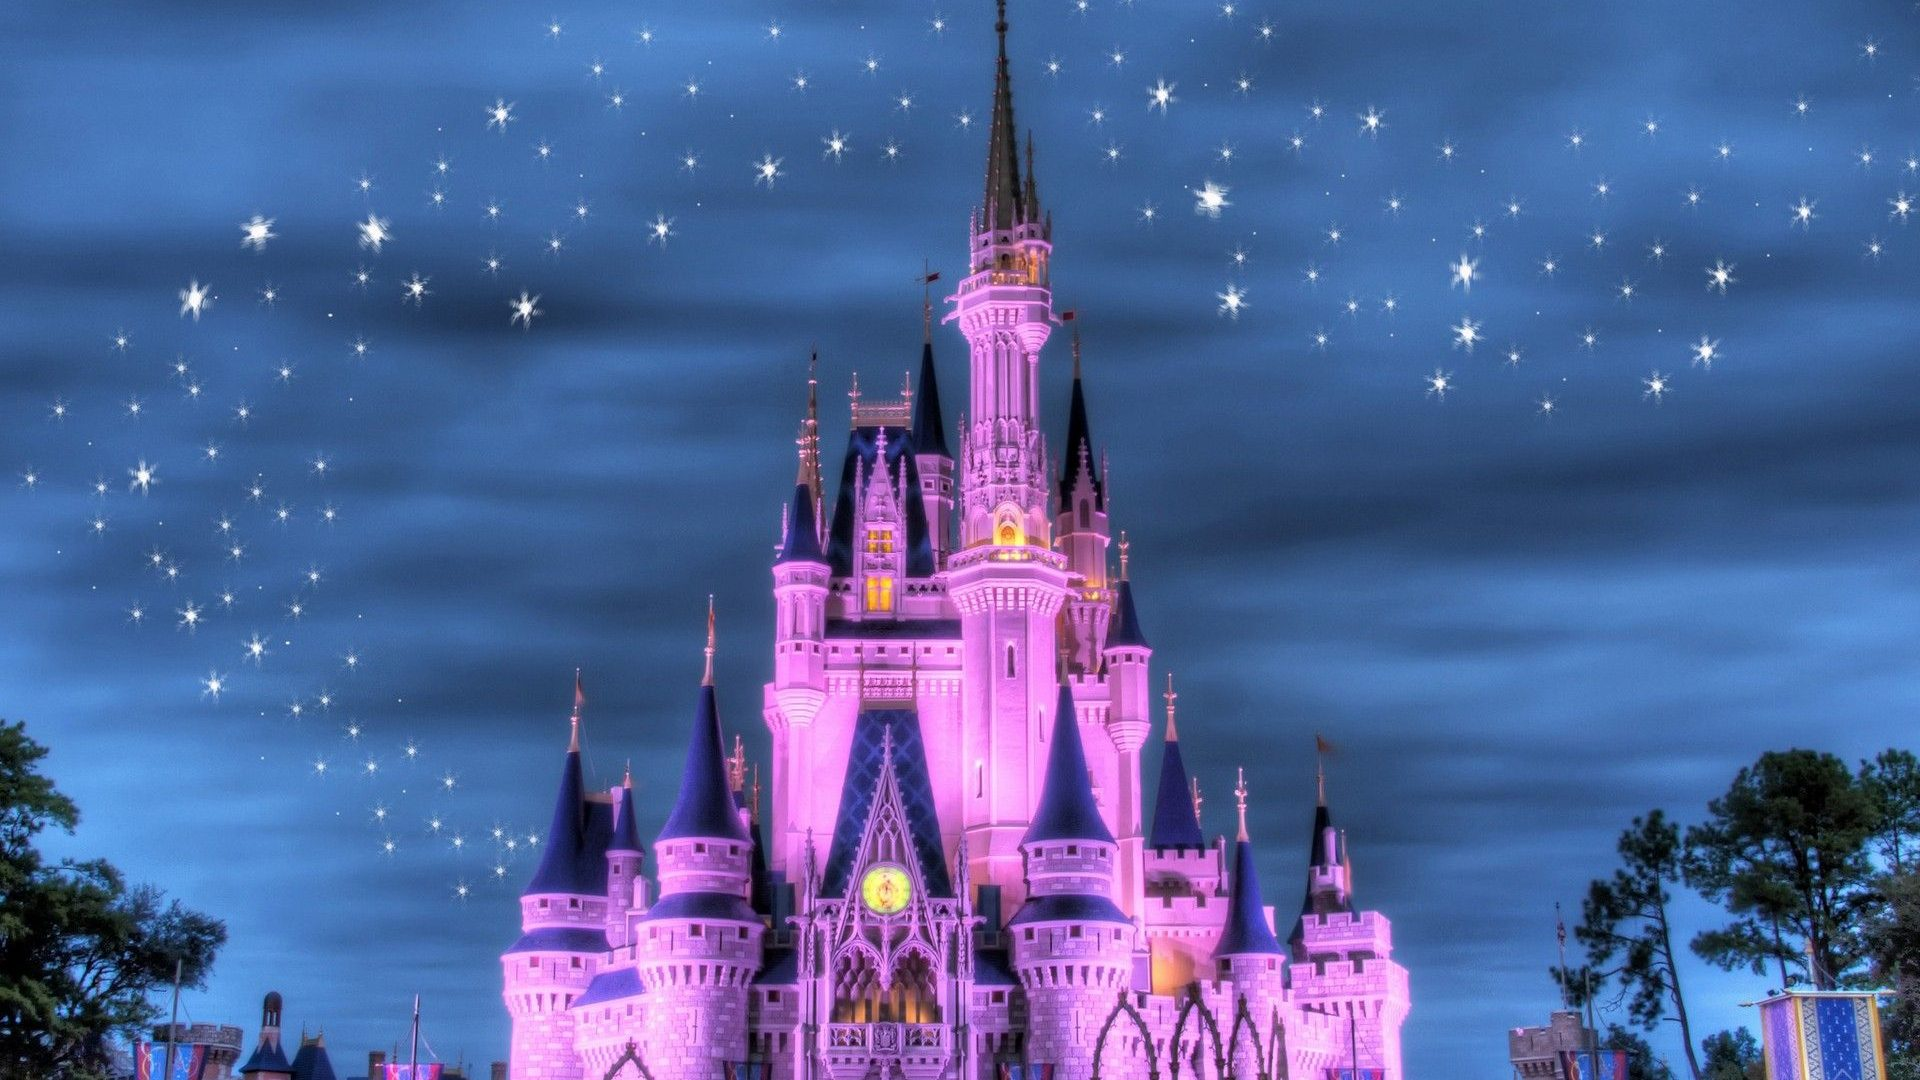 Disney Castle Wallpapers Hd Pixelstalk Net